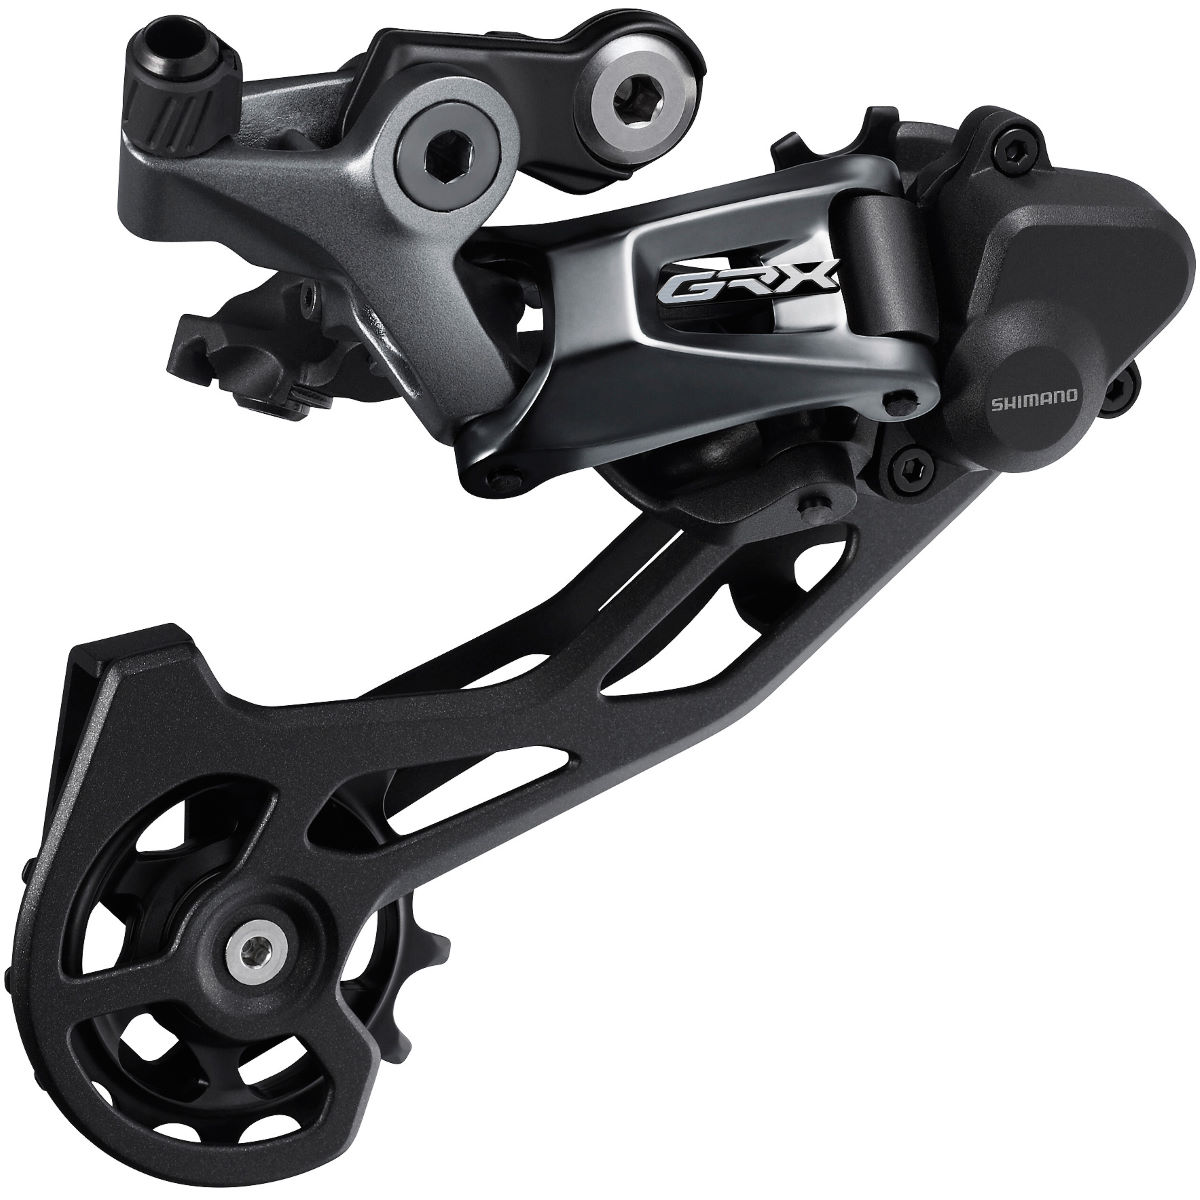 Shimano RX810 2x11 Speed Shadow+ Rear Derailleur   Rear Derailleurs